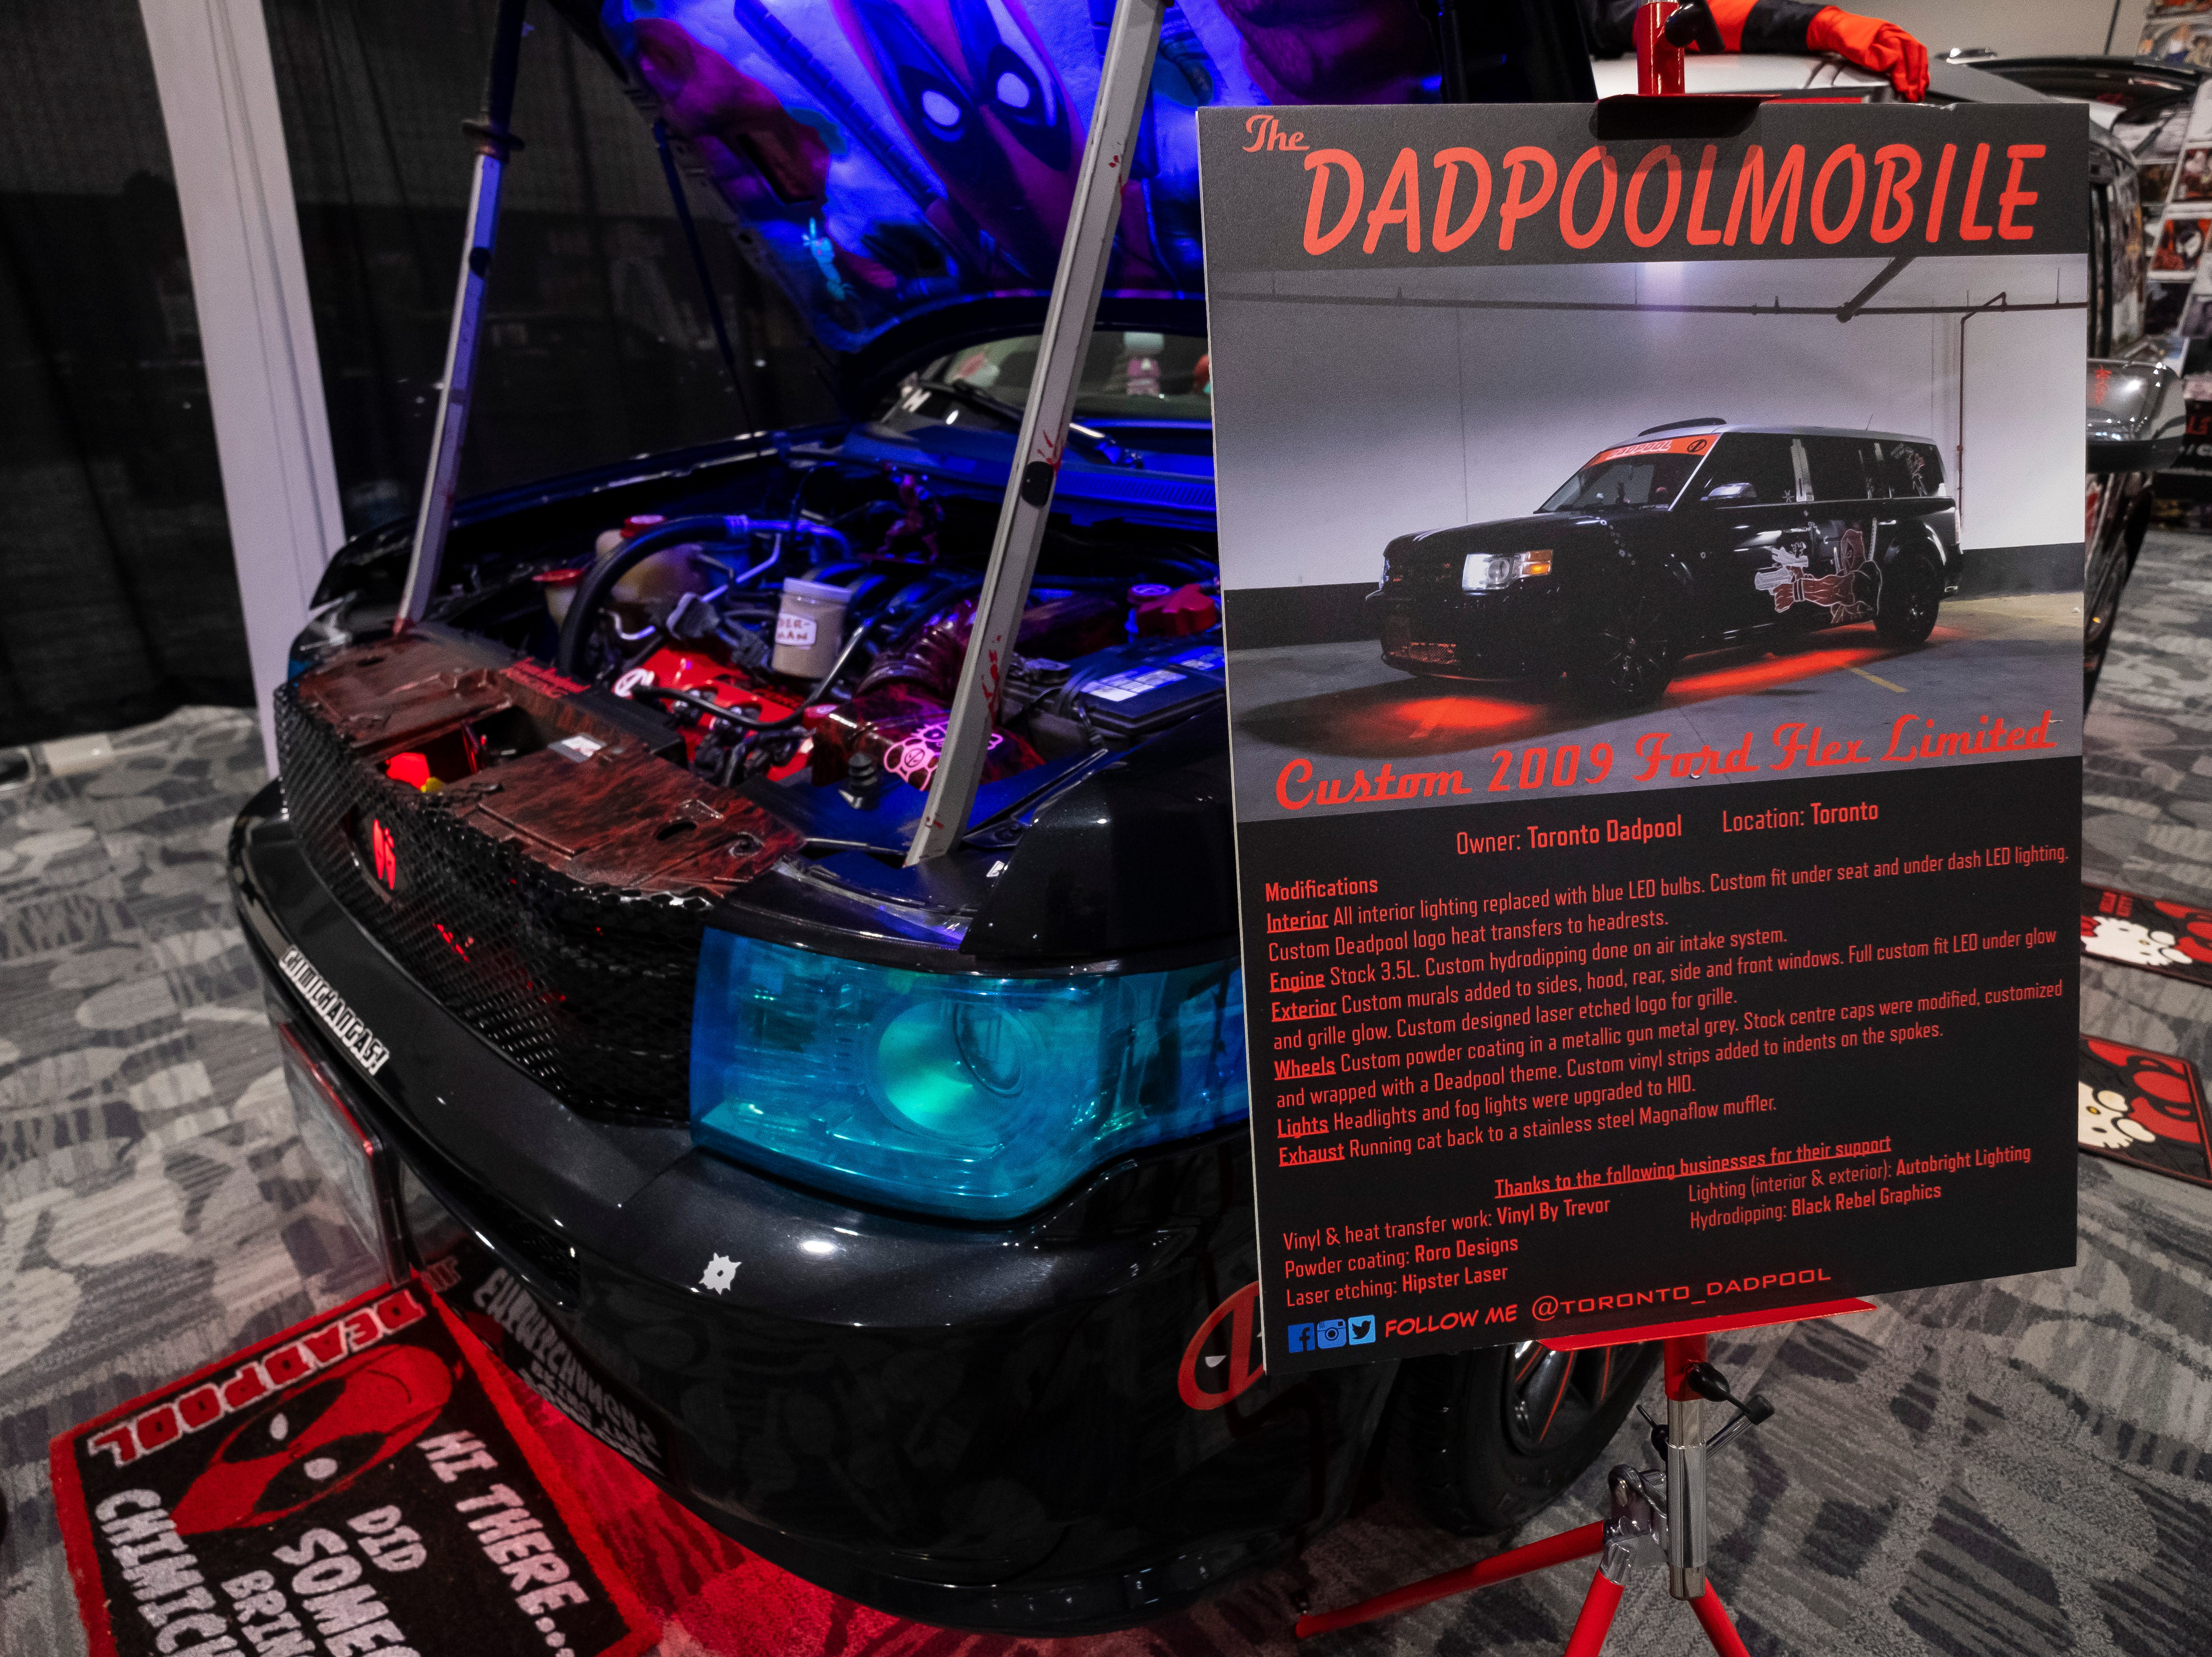 """The Dadpoolmobile--a Ford Flex decorated in Deadpool stickers and other memorabilia--sits on display Saturday, March 30, 2019 during Blue Water International Comic-Con. Before becoming the Dadpoolmobile, the vehicle was decorated and shown as a hearse. """"My wife said no stickers on it,"""" said Trevor Lyn, also known as the Toronto Dadpool. """"That lasted probably about three months."""""""